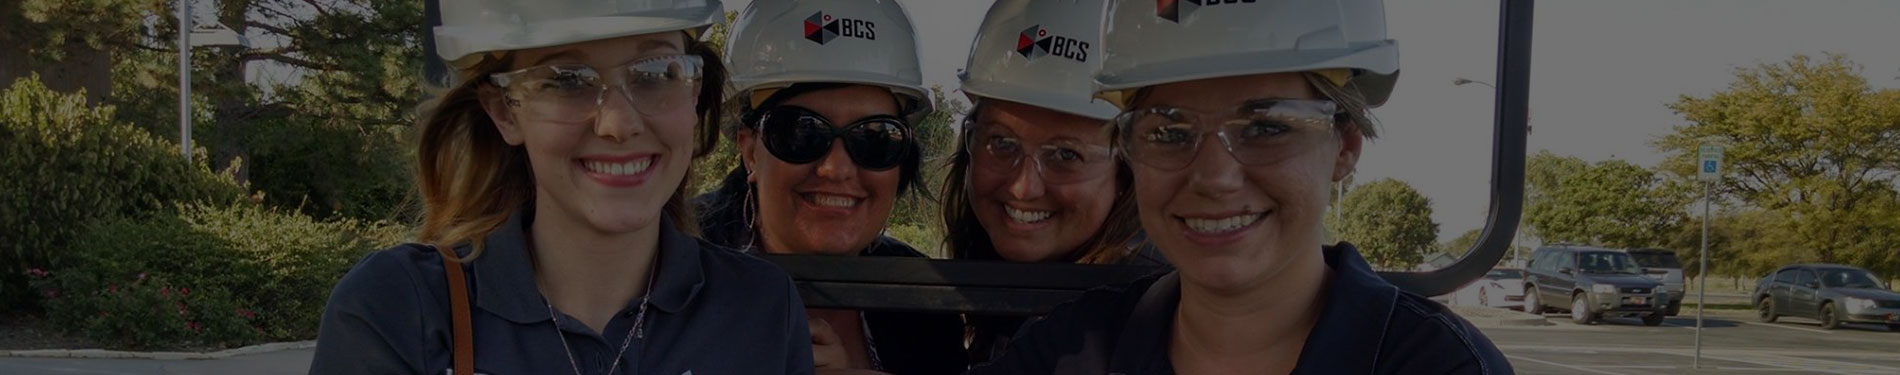 bcs workers smiling